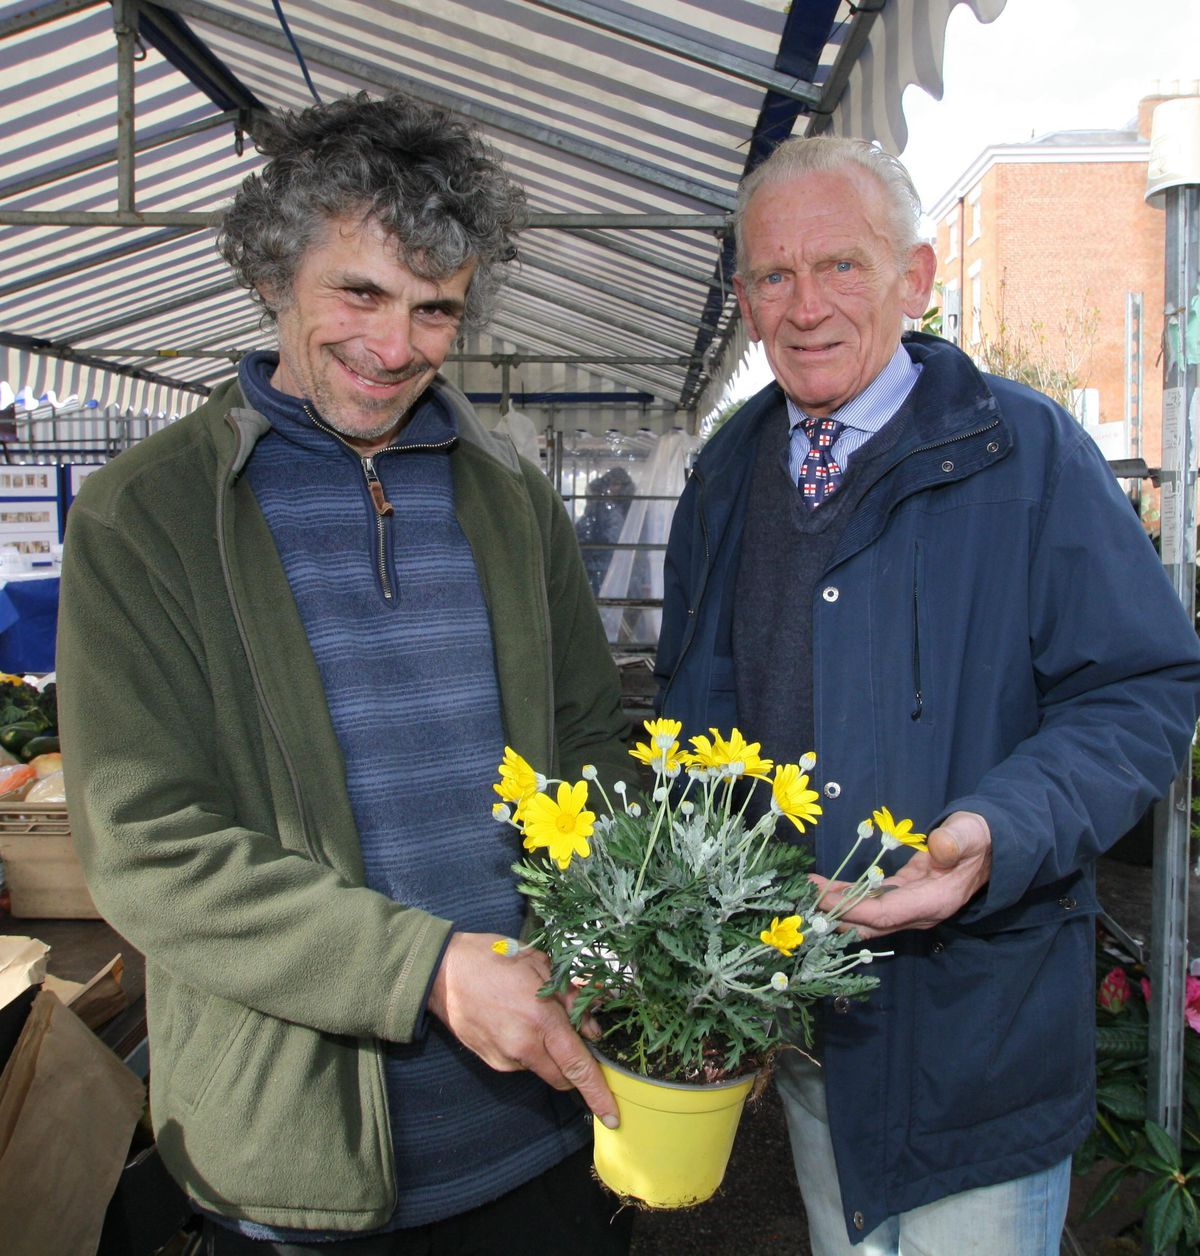 Roger Farmer, left, makes a sale to Kenneth Clinton on his fruit, vegetable and flower stall.